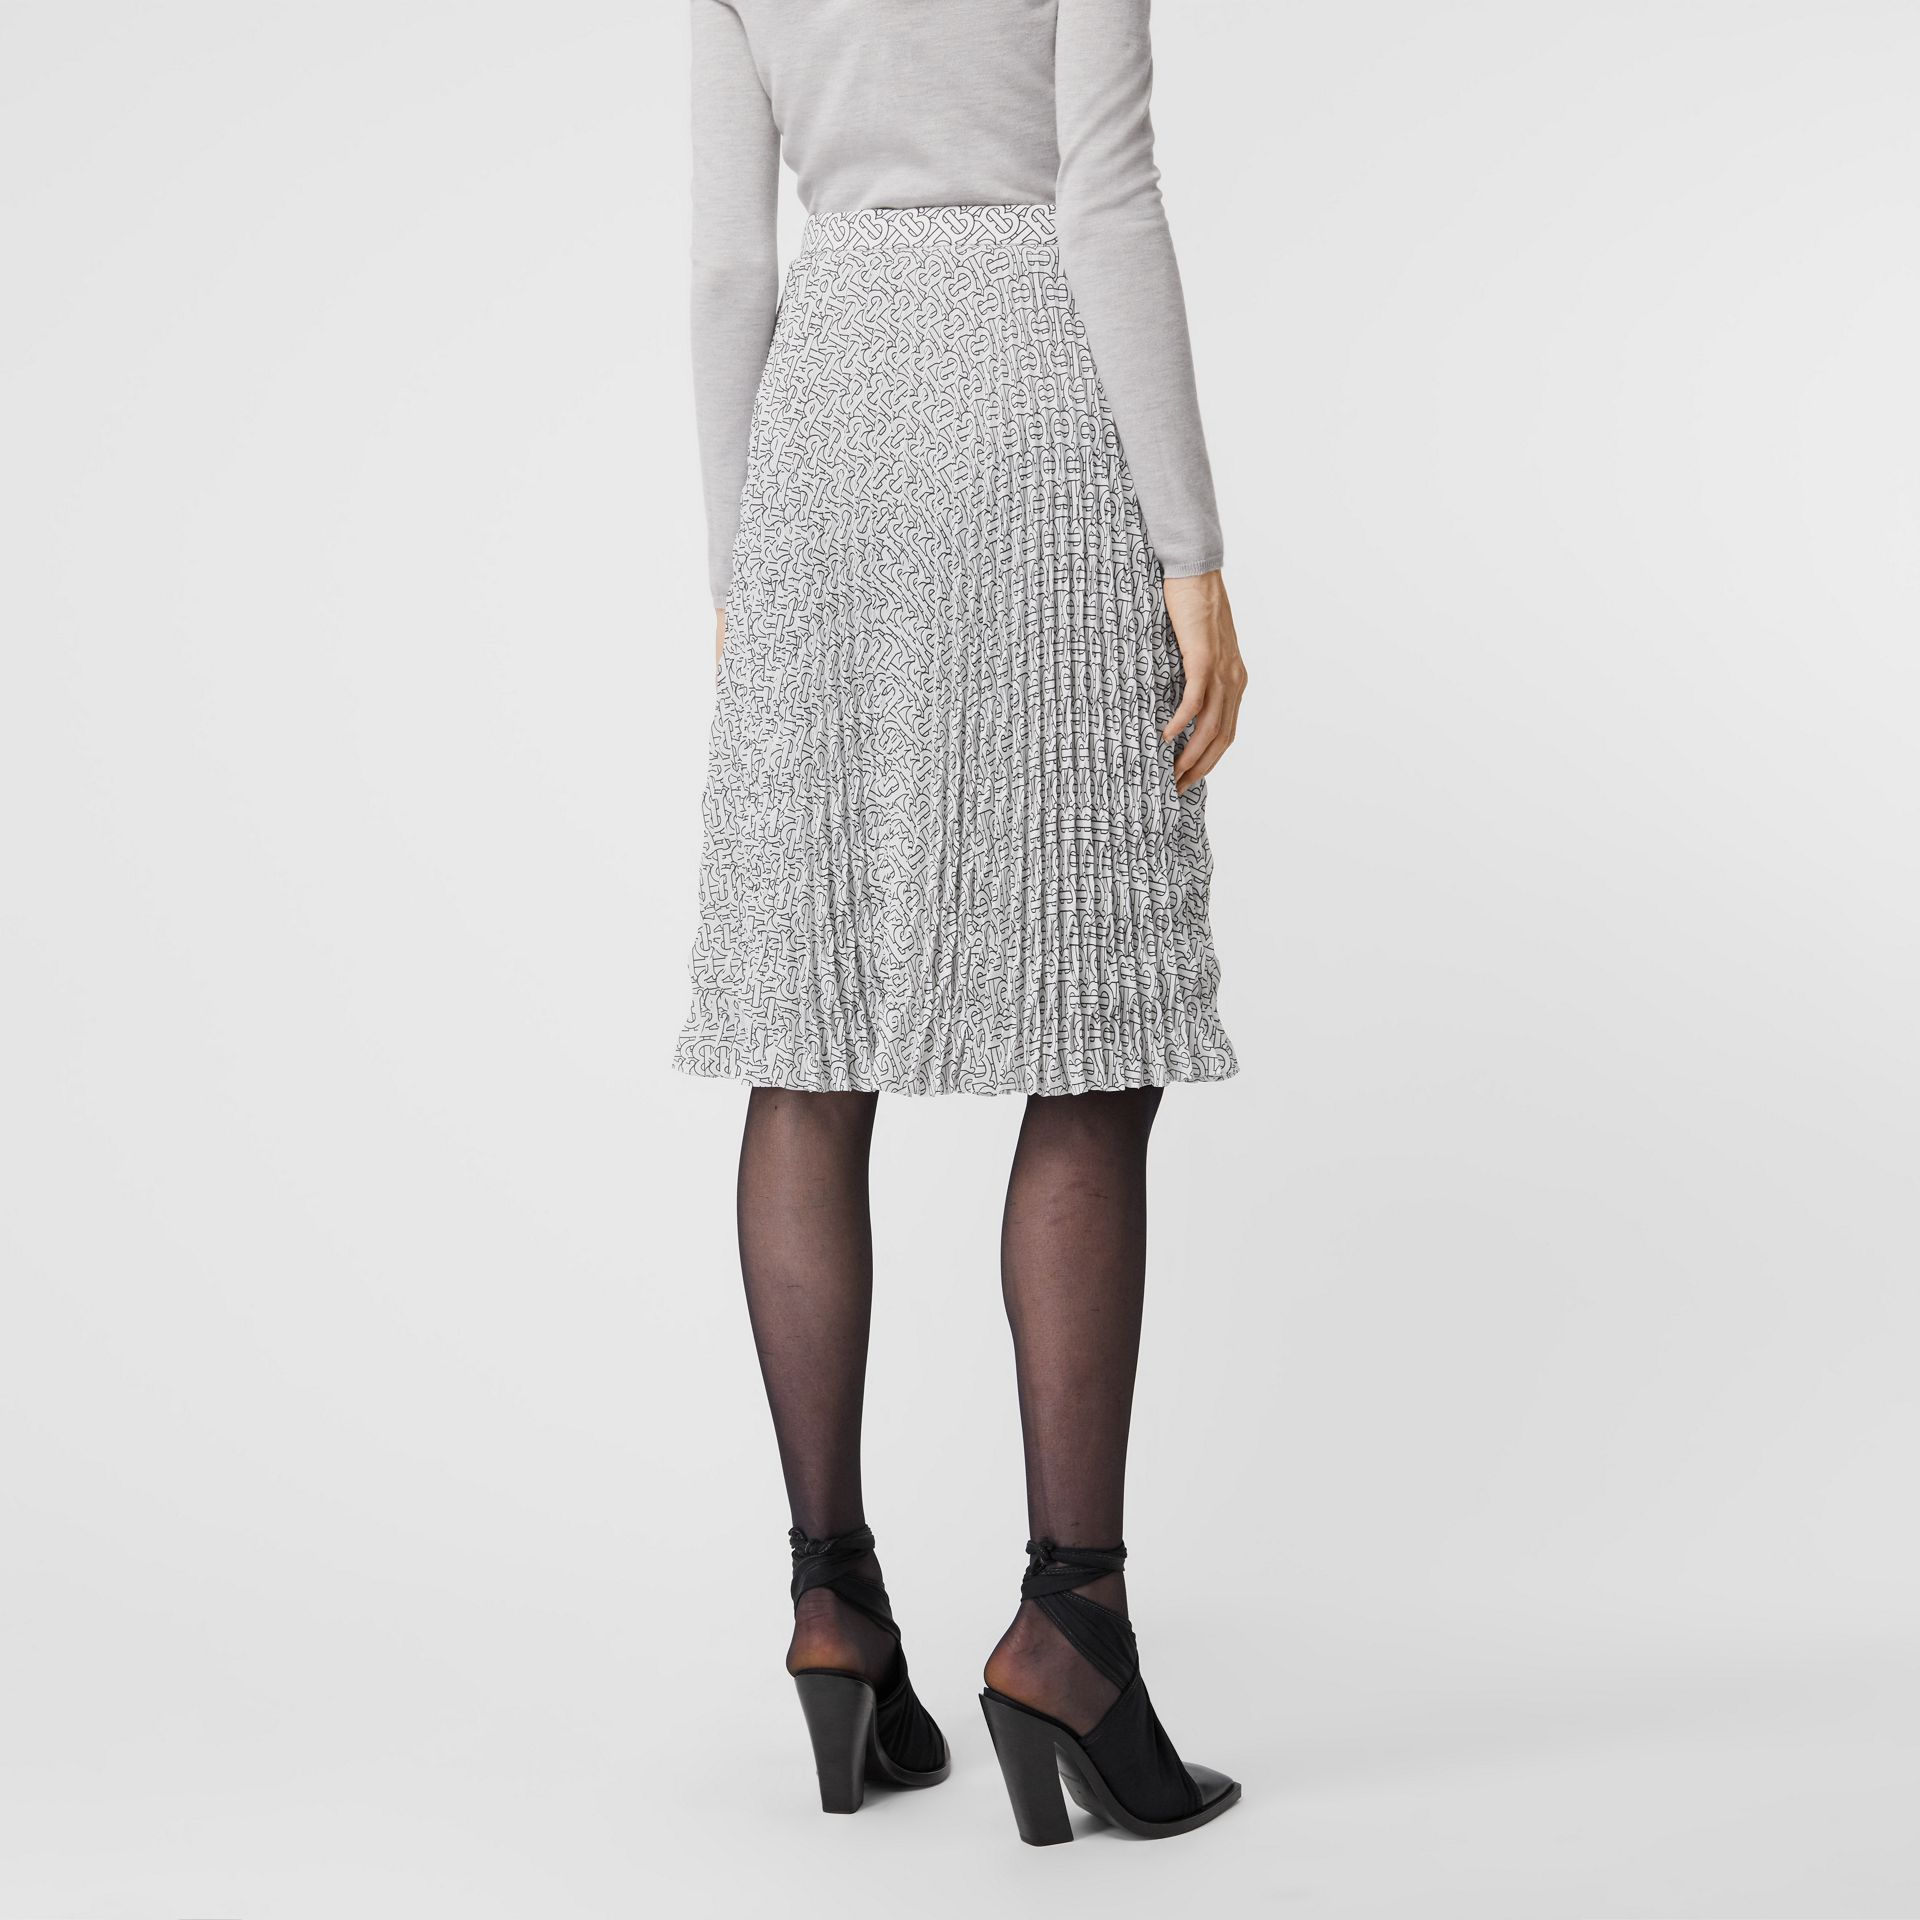 Monogram Print Crepe De Chine Pleated Skirt in White/black - Women | Burberry Australia - gallery image 2